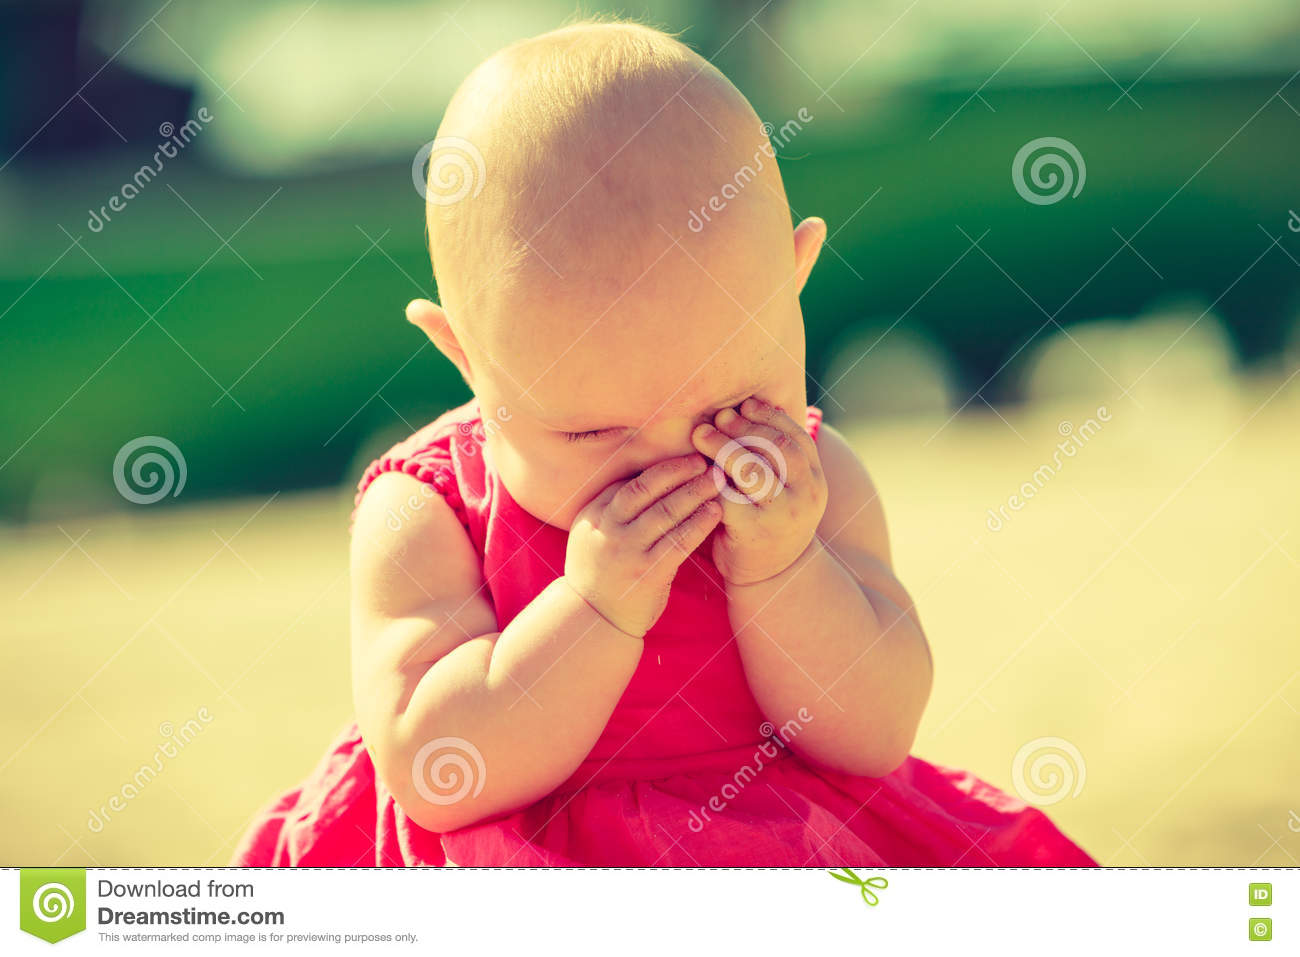 Image result for shy face baby